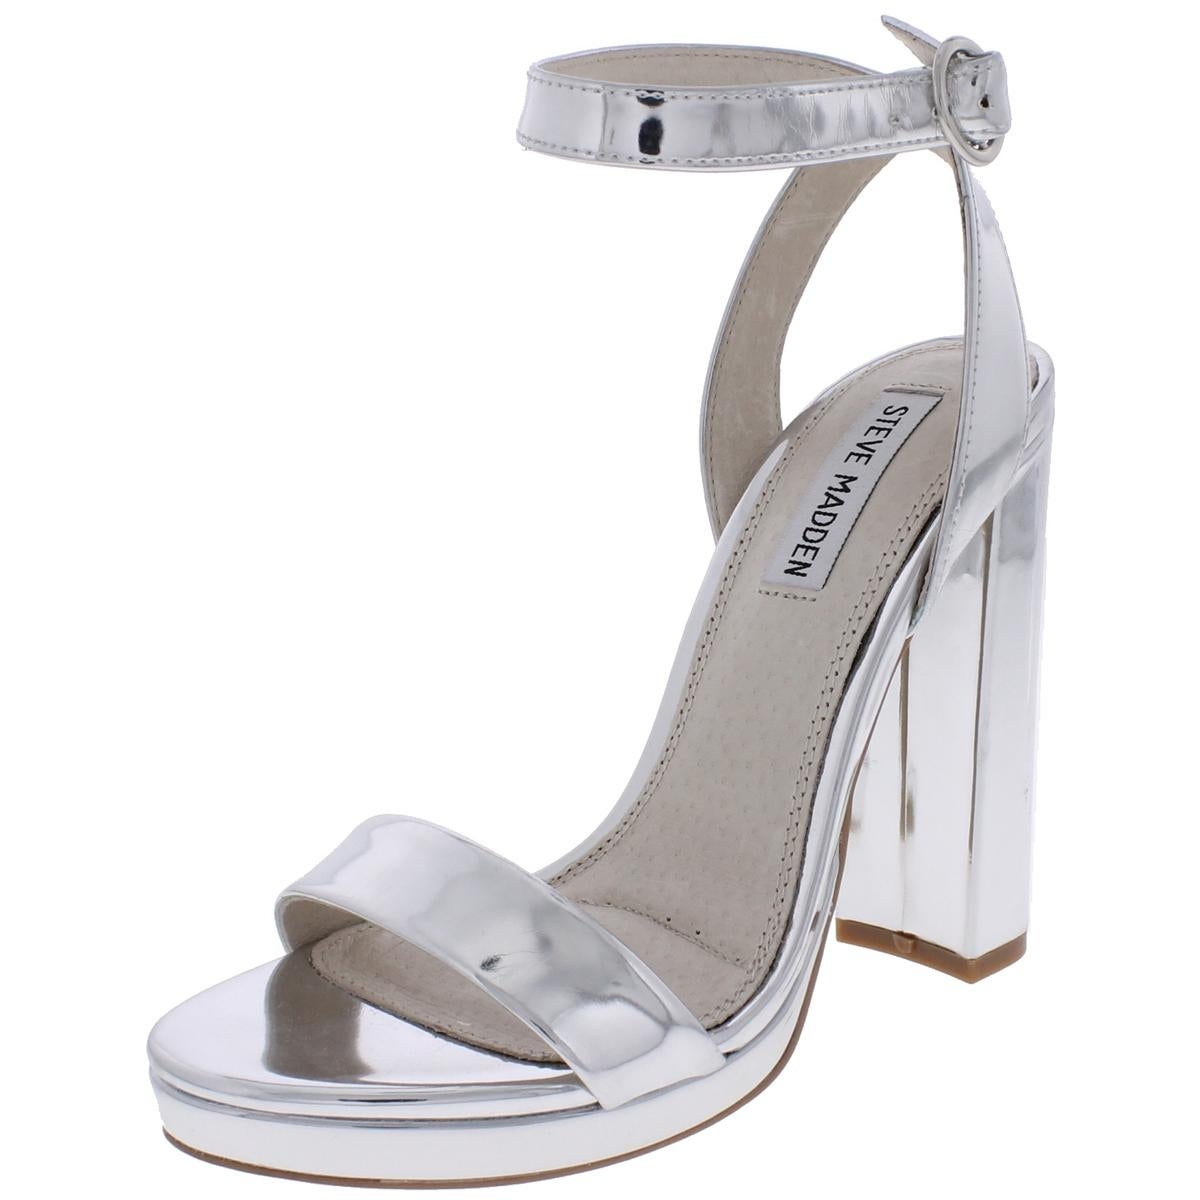 17e0b75acb1 Shop Steve Madden Womens Addon Dress Sandals Open Toe Chunky Heel - Ships  To Canada - Overstock.ca - 20673227